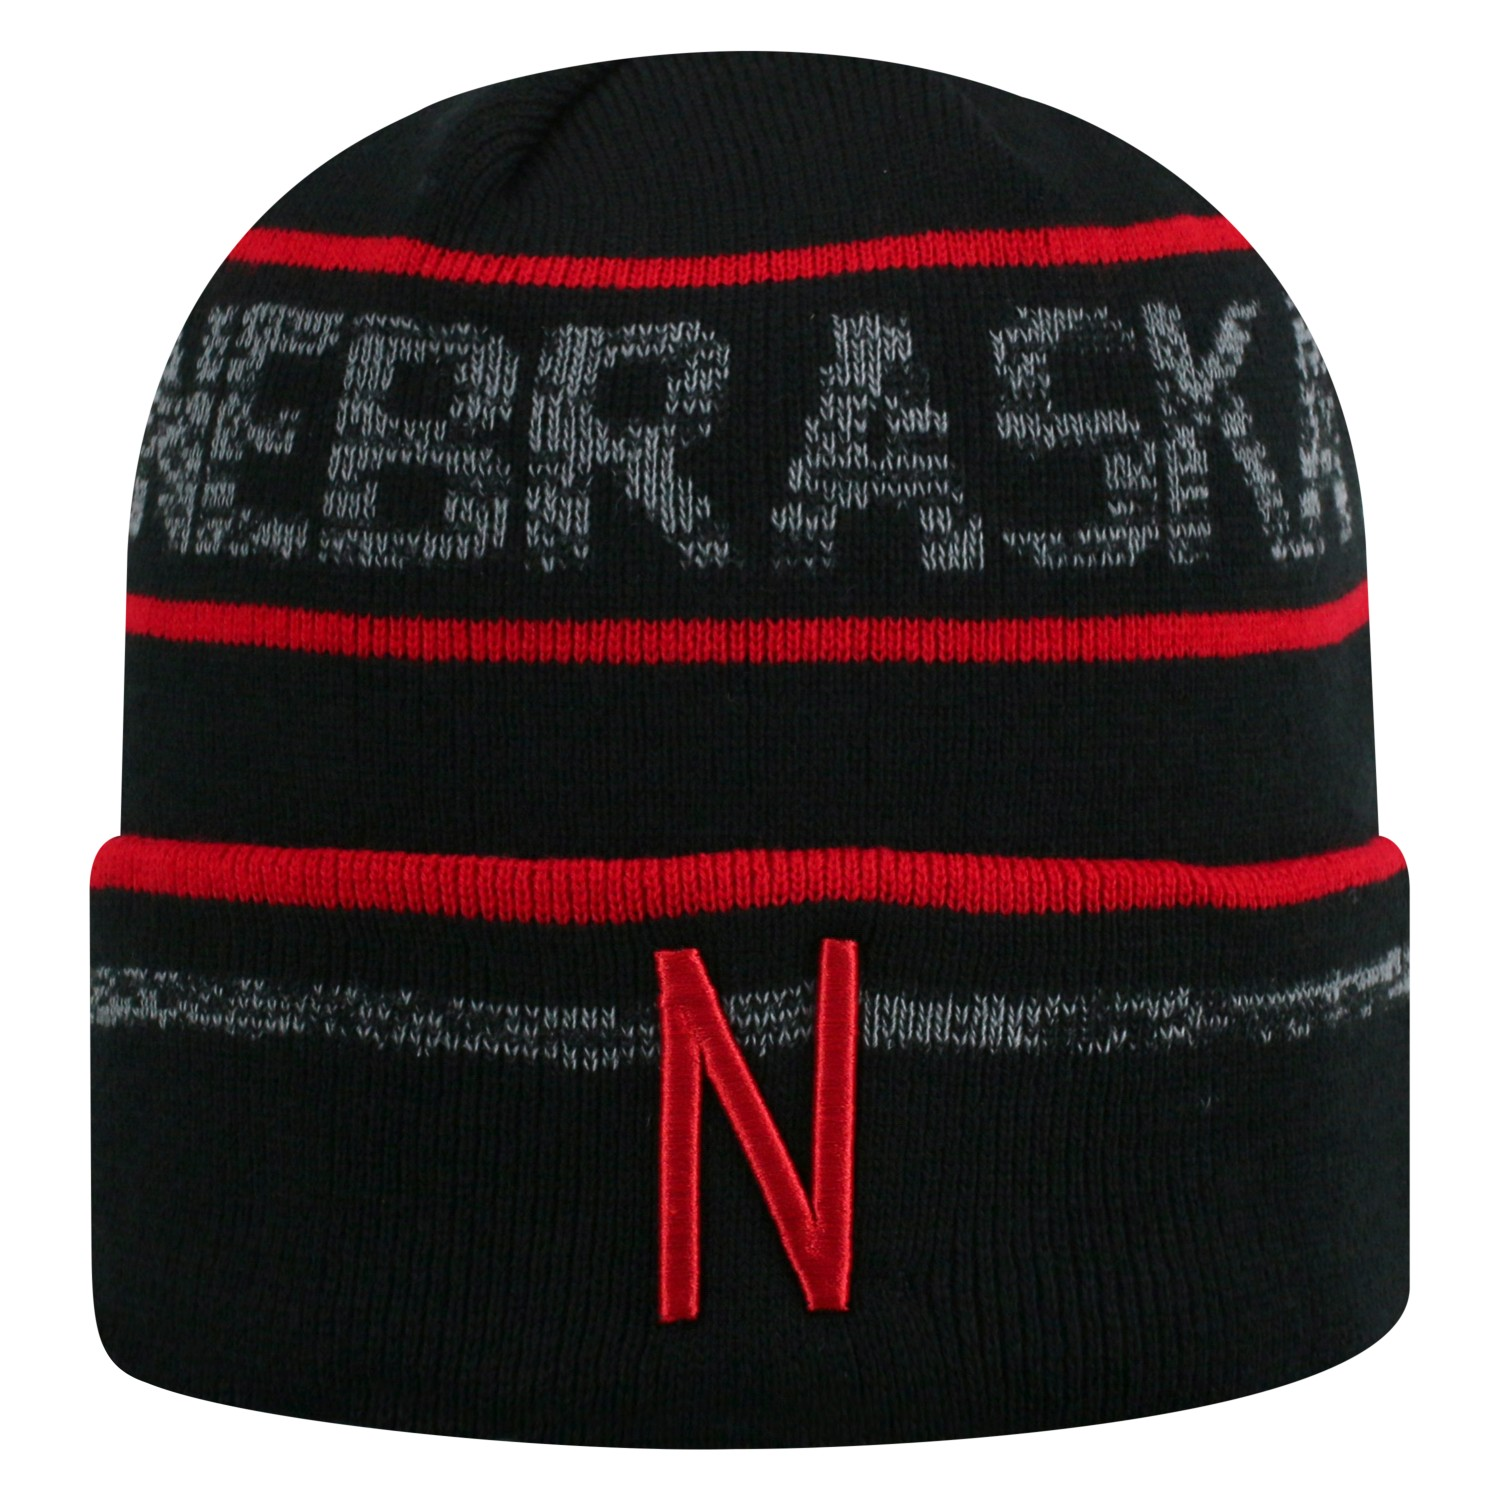 buy popular 72a04 2ff00 ... get details about nebraska cornhuskers tow black striped effect style  cuffed knit beanie cap 9ad56 1e5f6